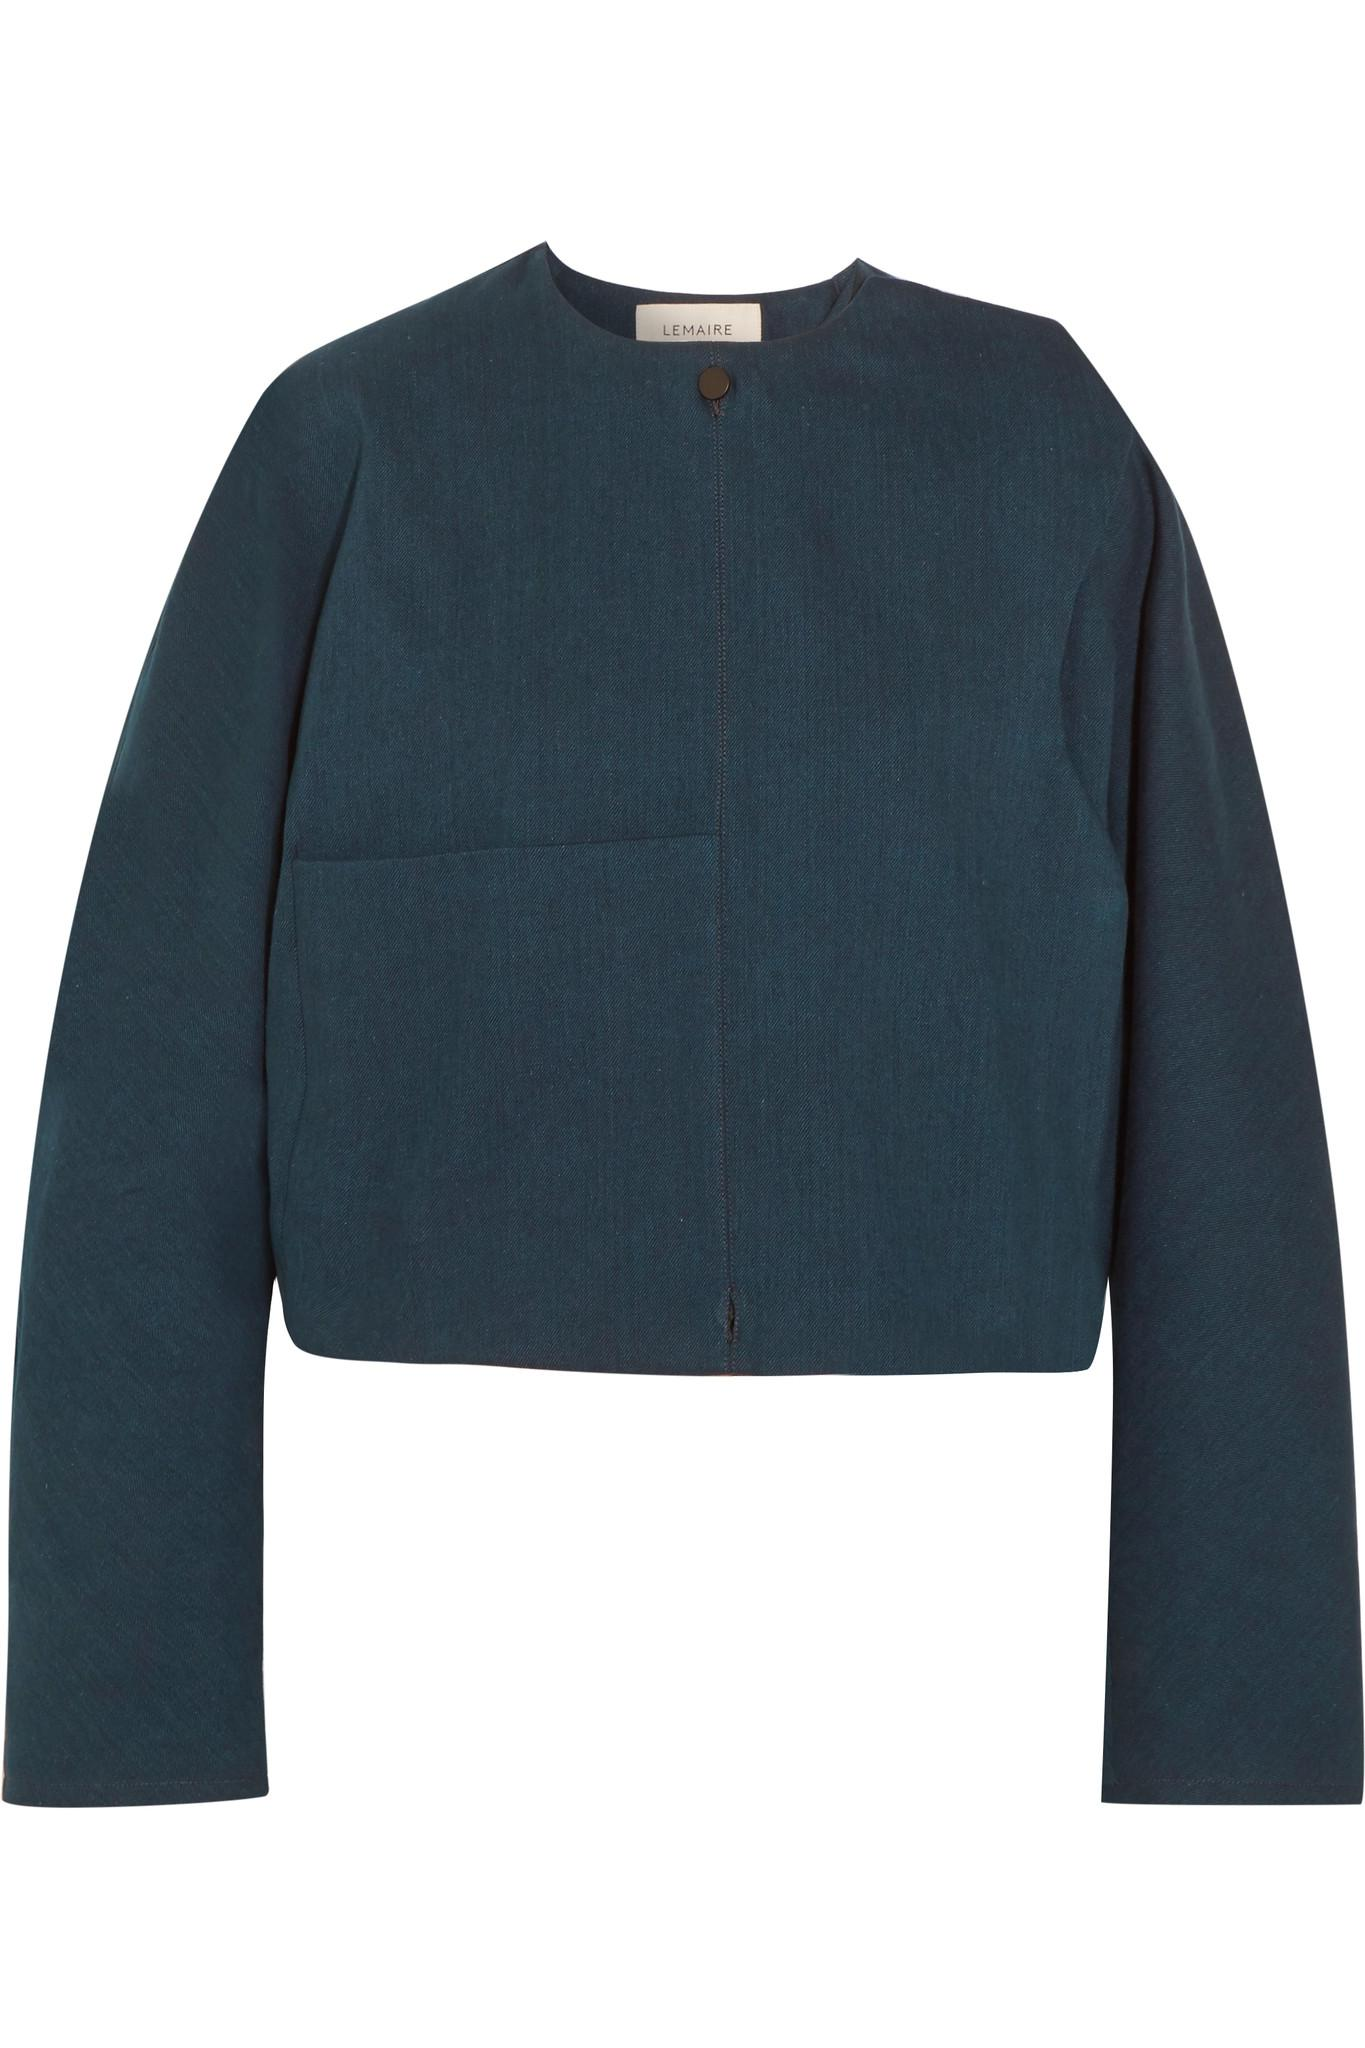 Lemaire Oversized Cropped Denim Jacket in Blue | Lyst